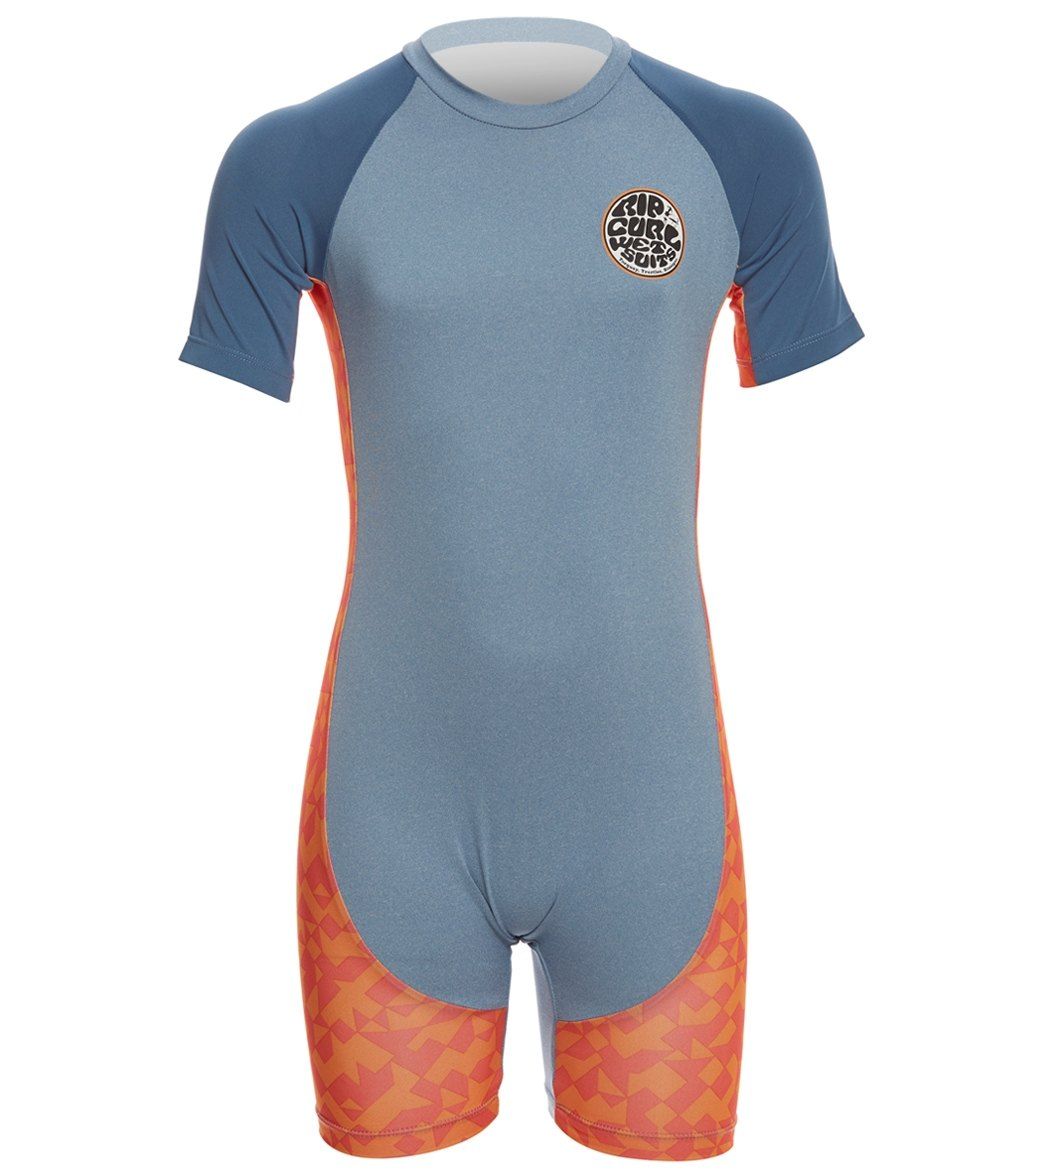 02c8265aa4 Rip Curl Toddler Boys' Aggrolite Short Sleeve Spring Suit Wetsuit at  SwimOutlet.com